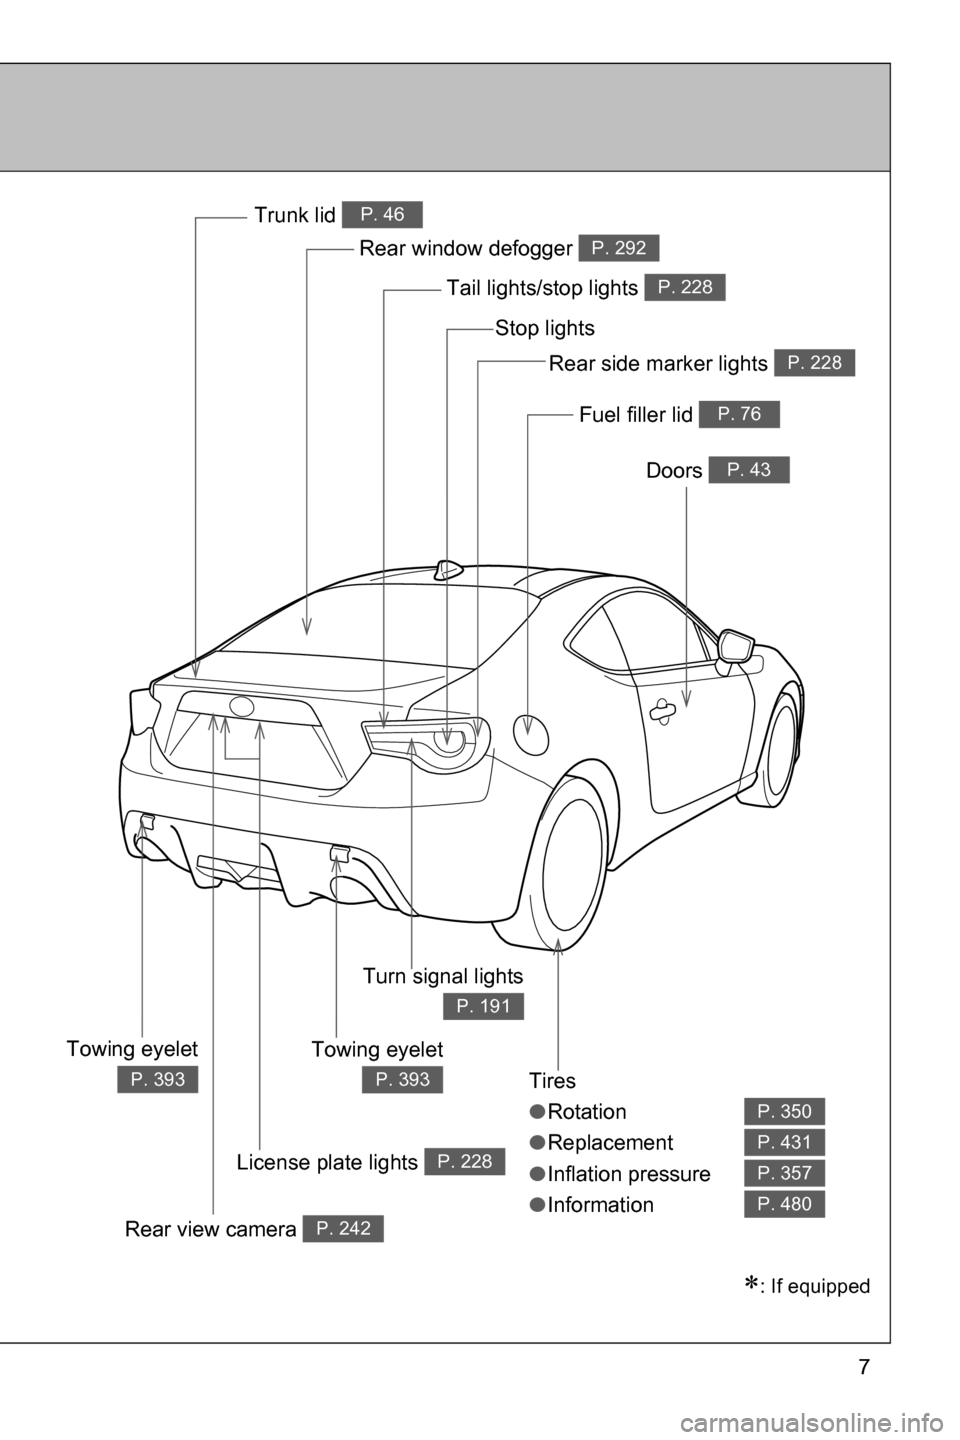 SUBARU BRZ 2017 1.G Owners Manual, Page 9